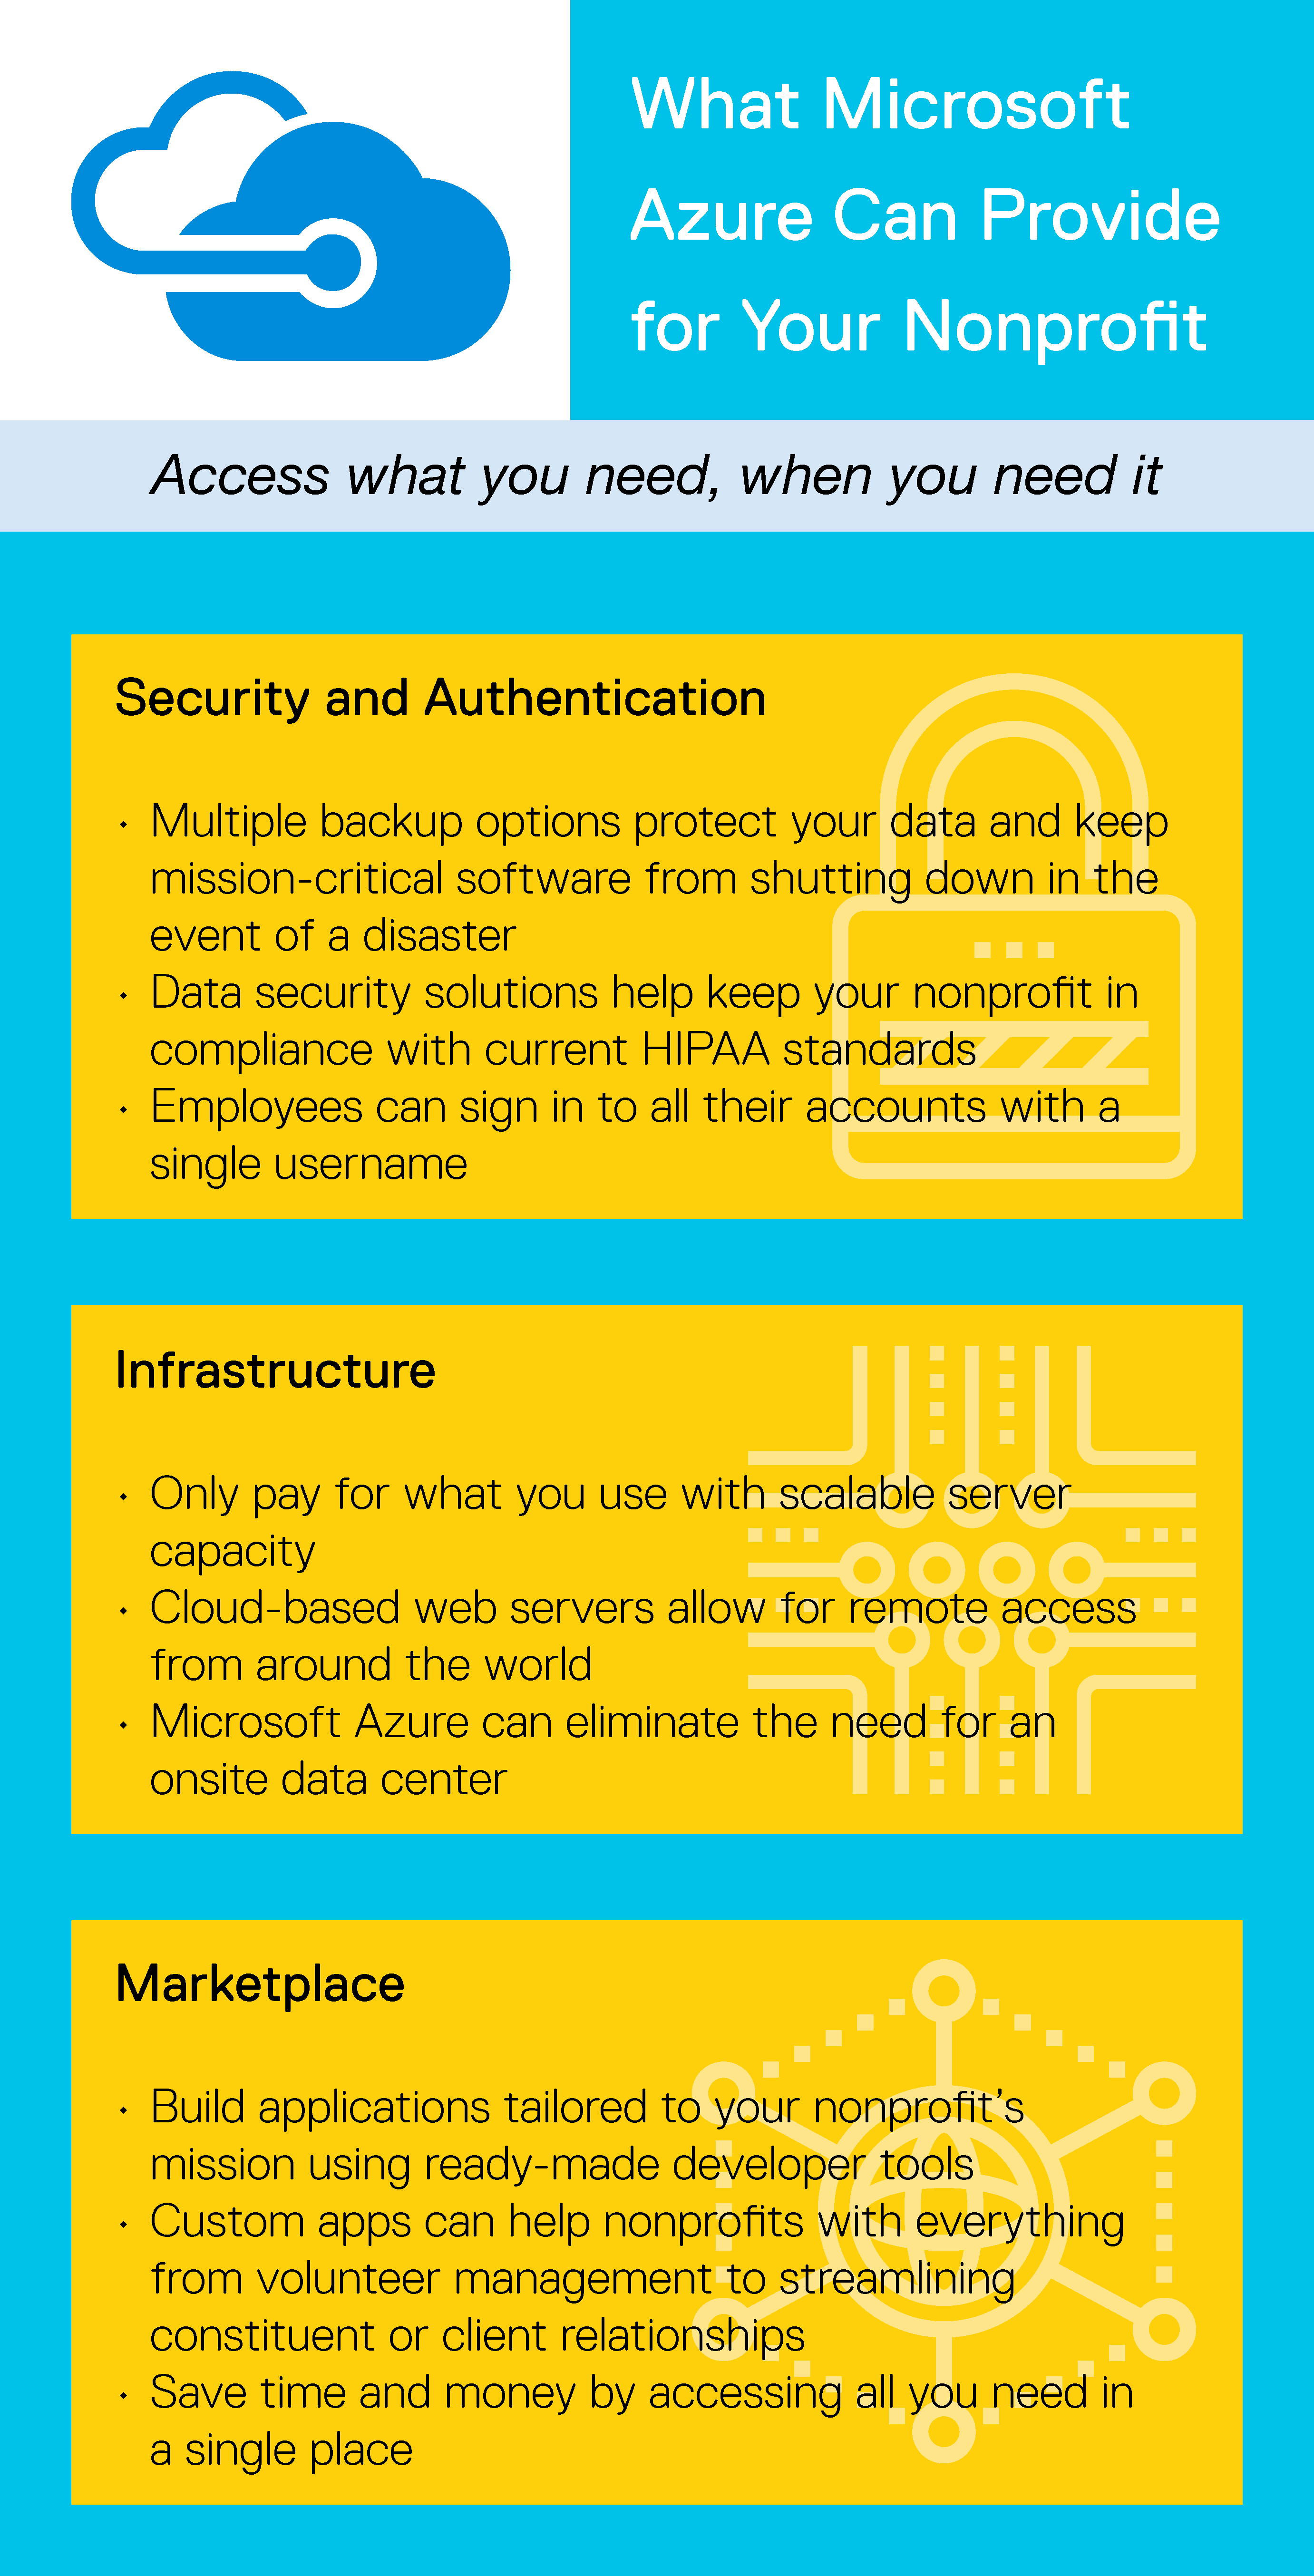 Infographic: Azure offers security and authentication, infrastructure, and marketplace features